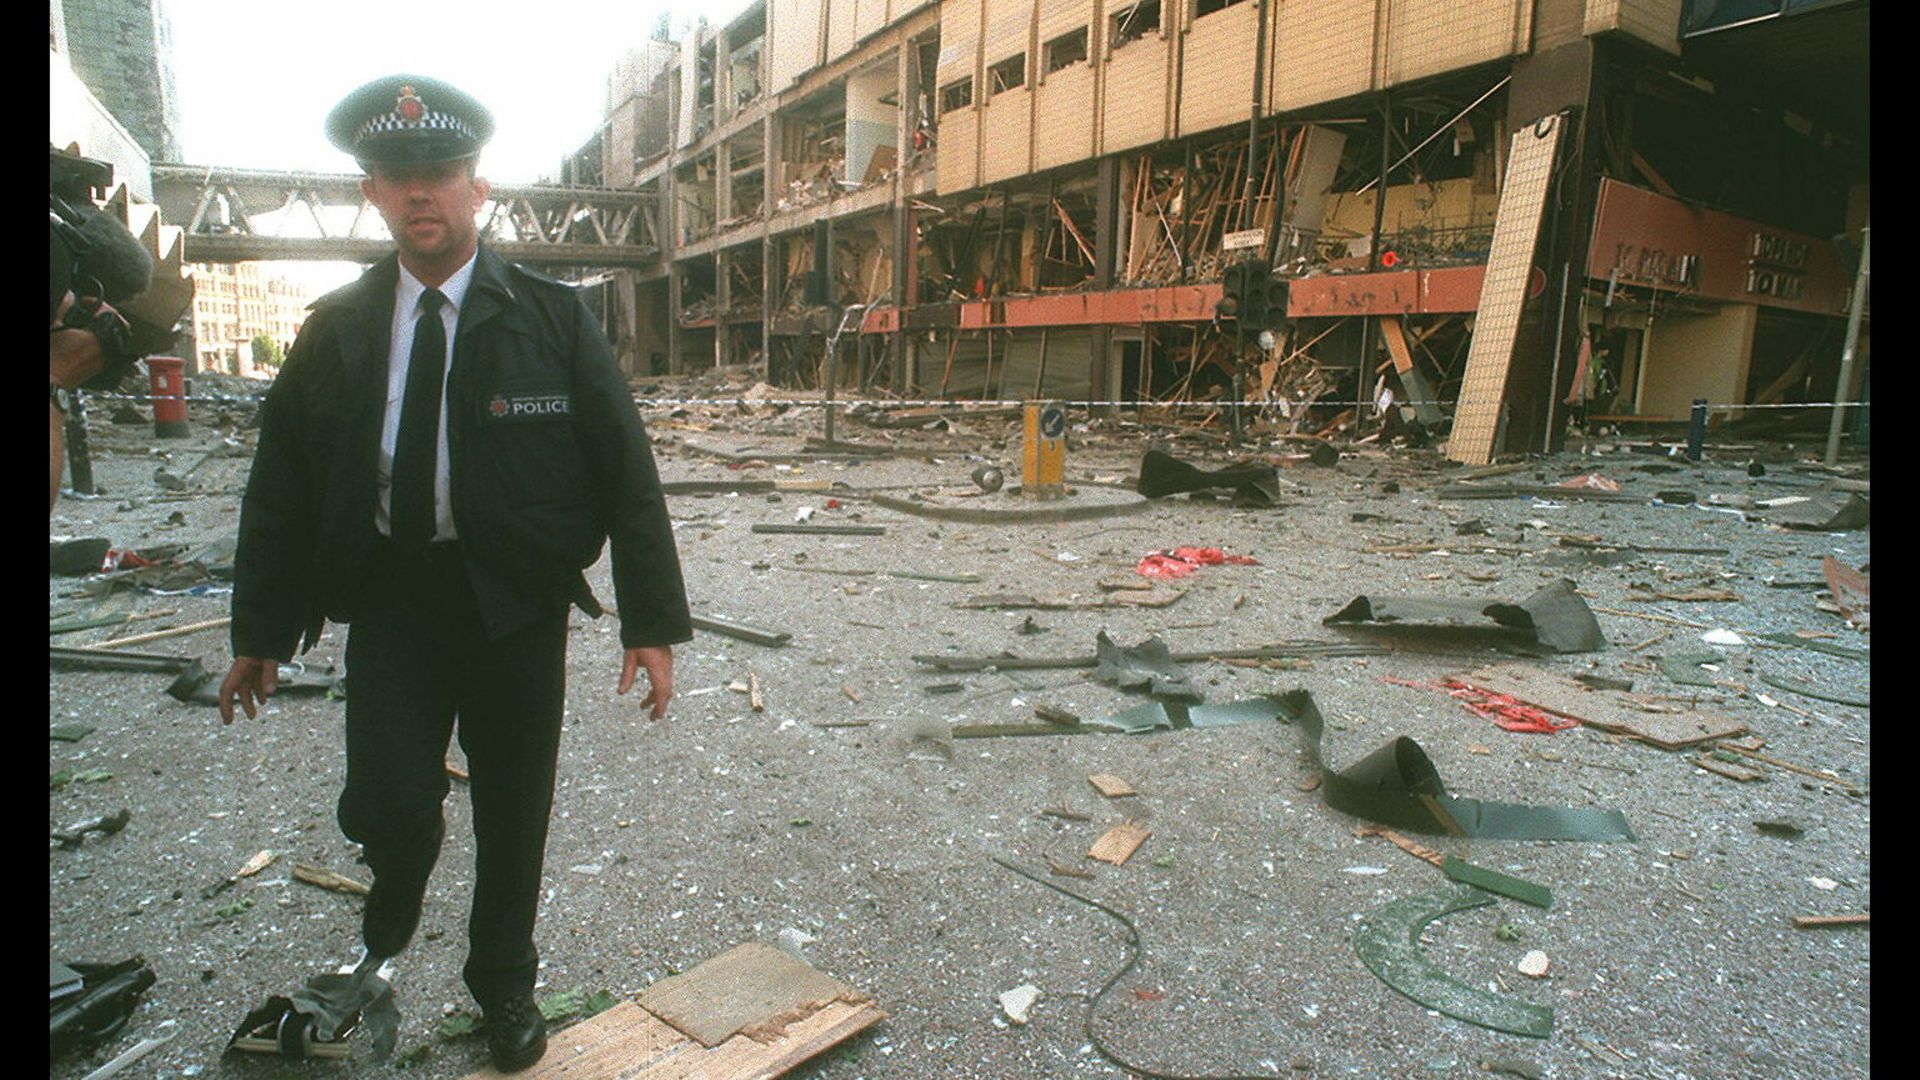 A police officer amid the damage caused by the IRA bomb in Manchester city centre - Credit: Sygma via Getty Images